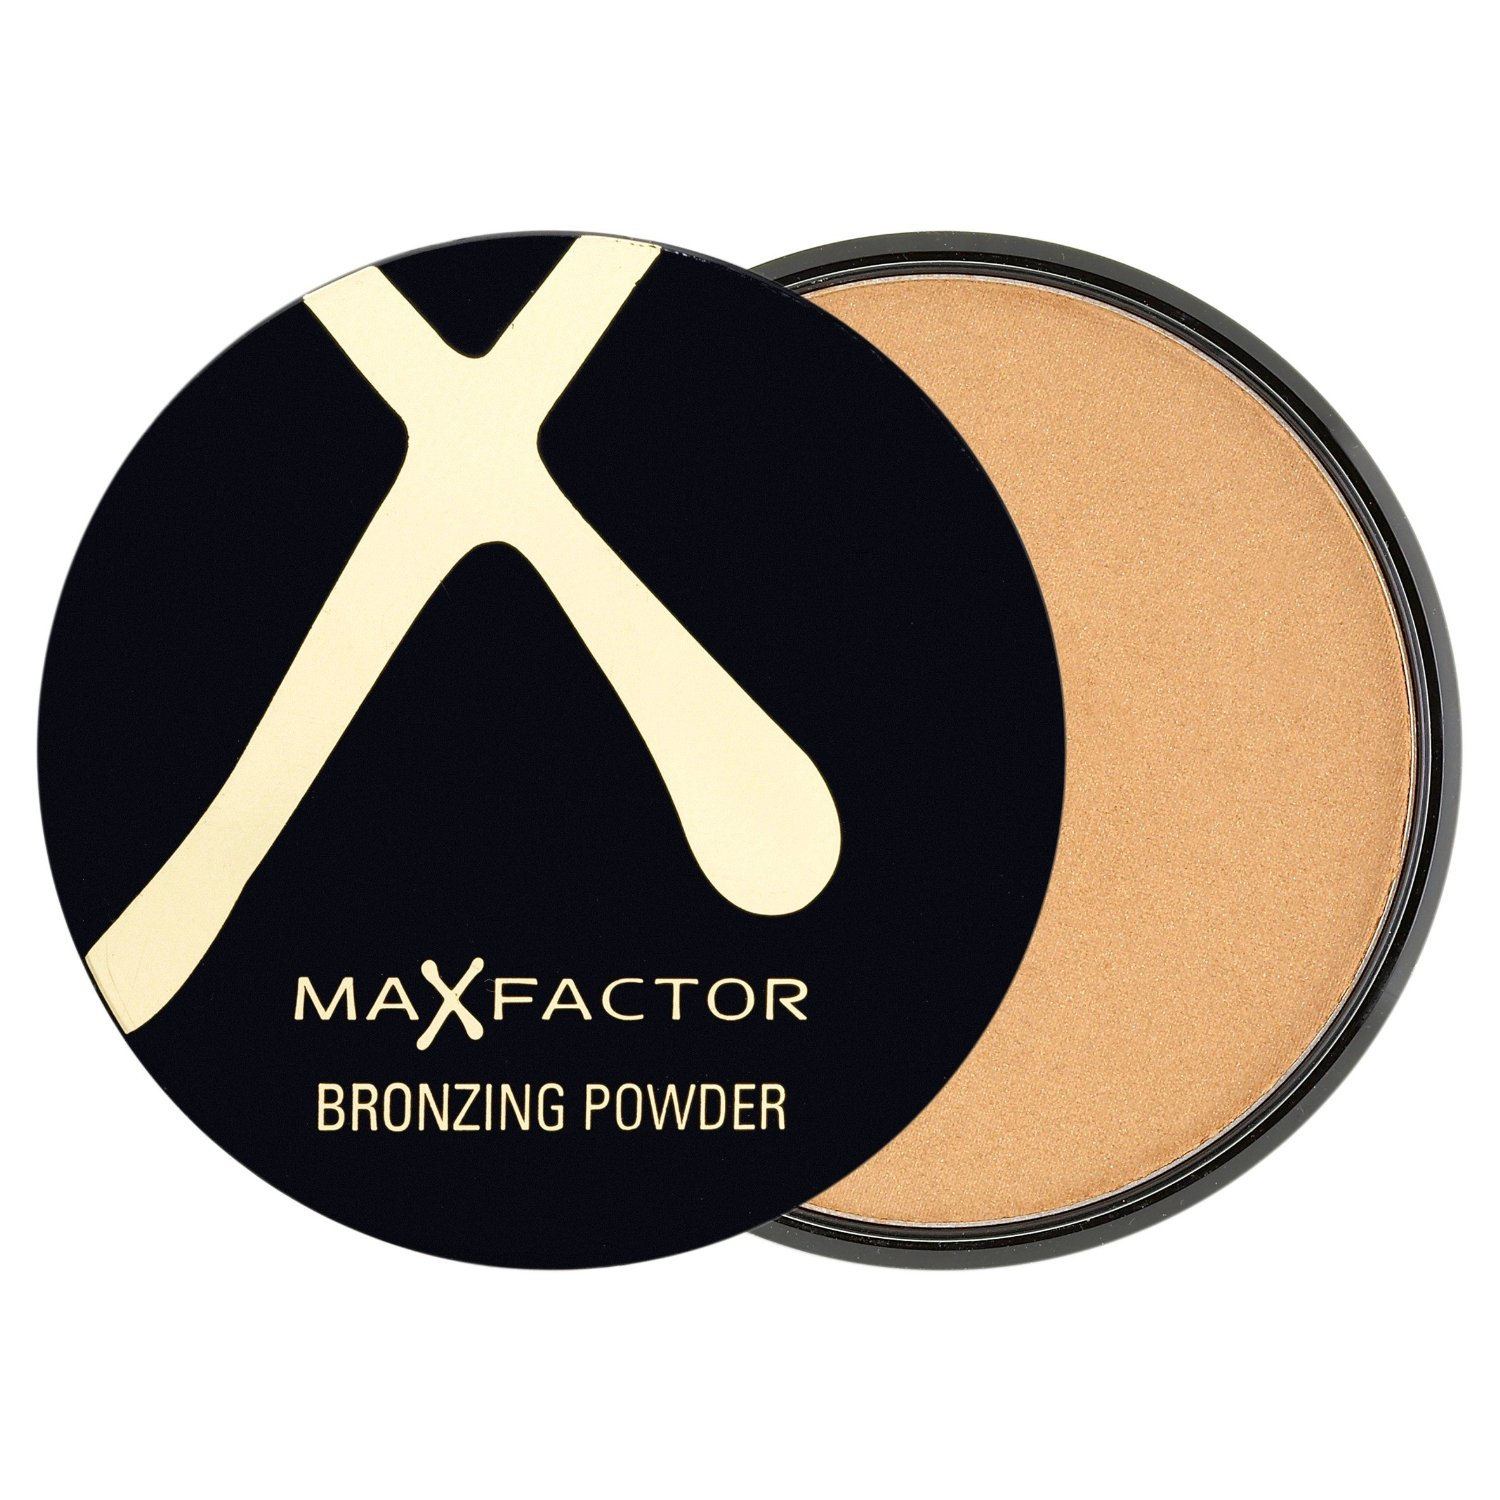 Max Factor Bronzing Powder for Women, # 01 Golden